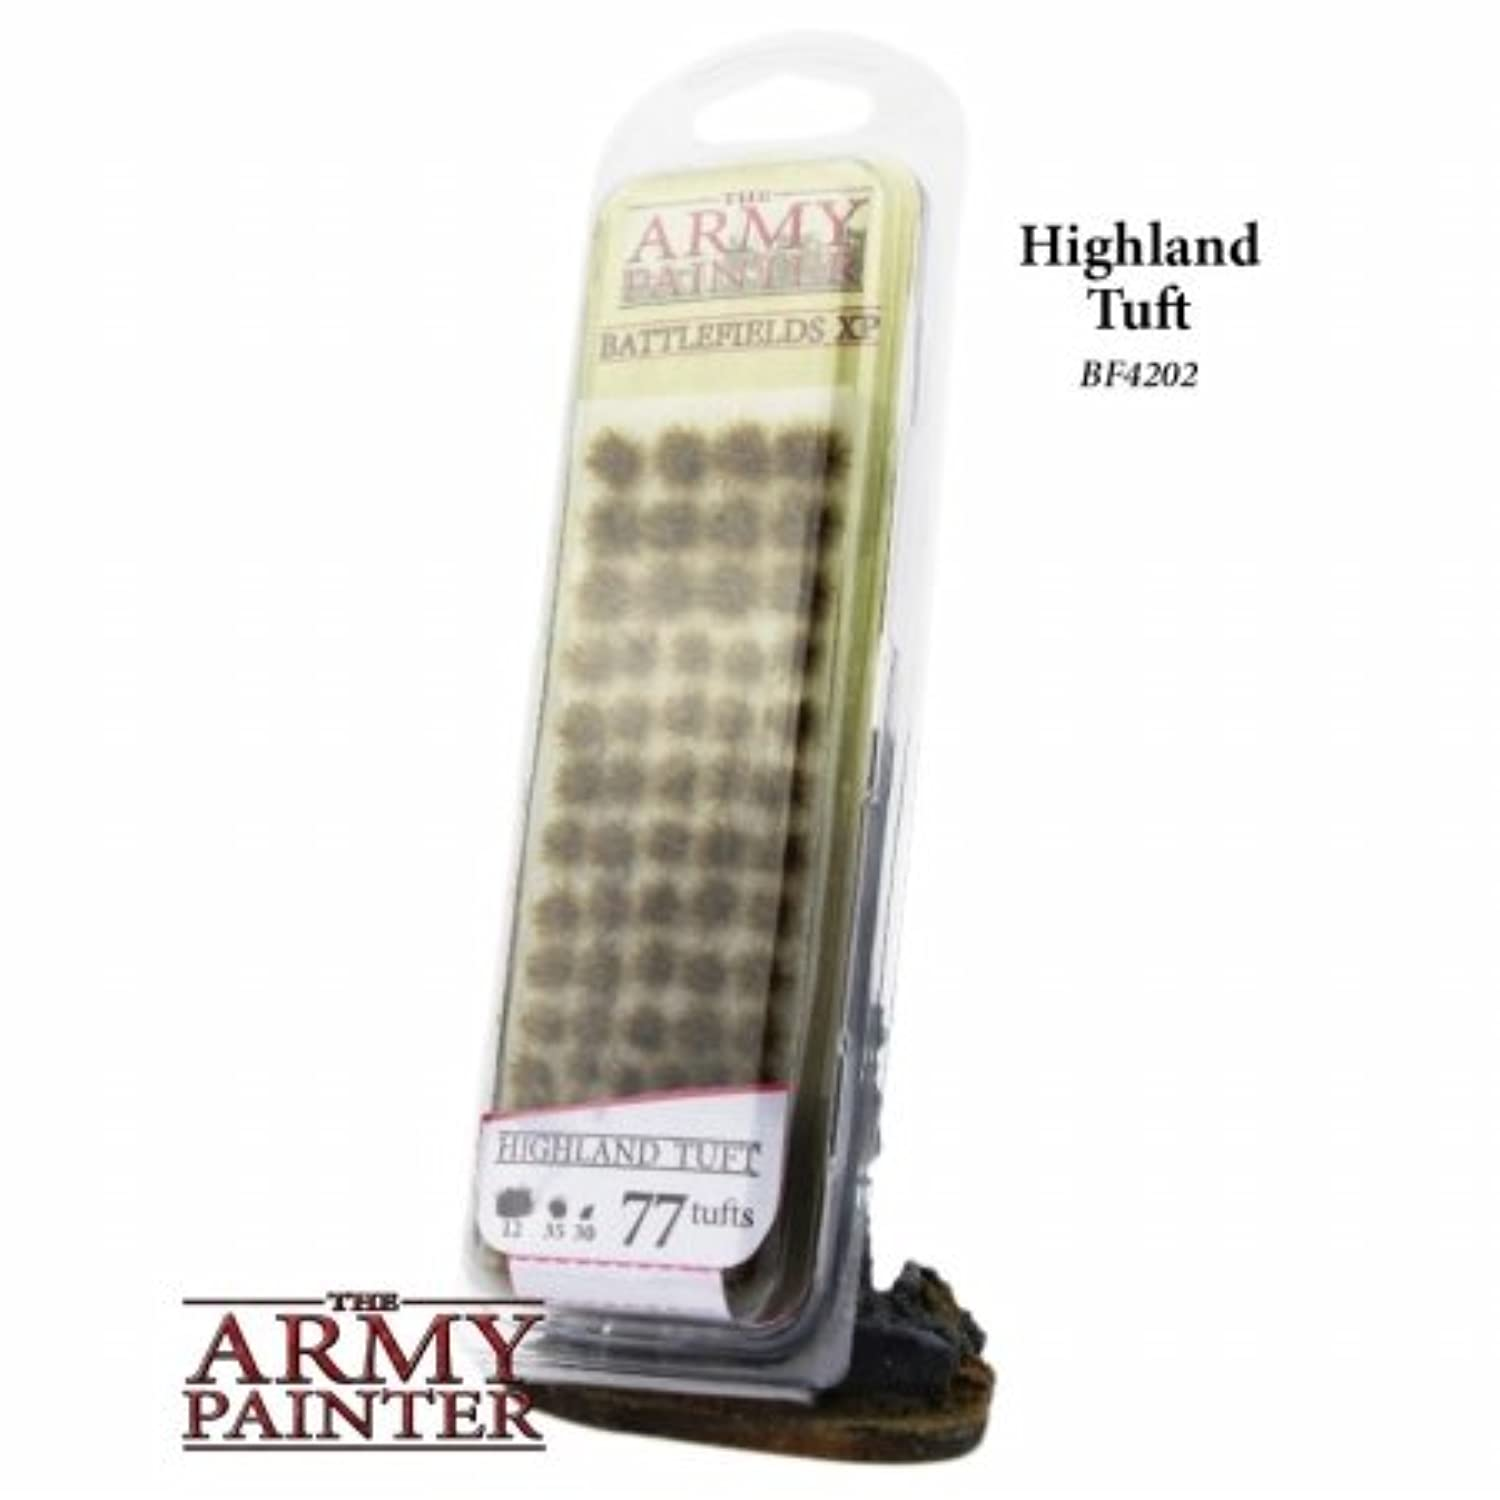 The Army Painter Warpaints - Battlefield Basing - Highland Turft BF4202